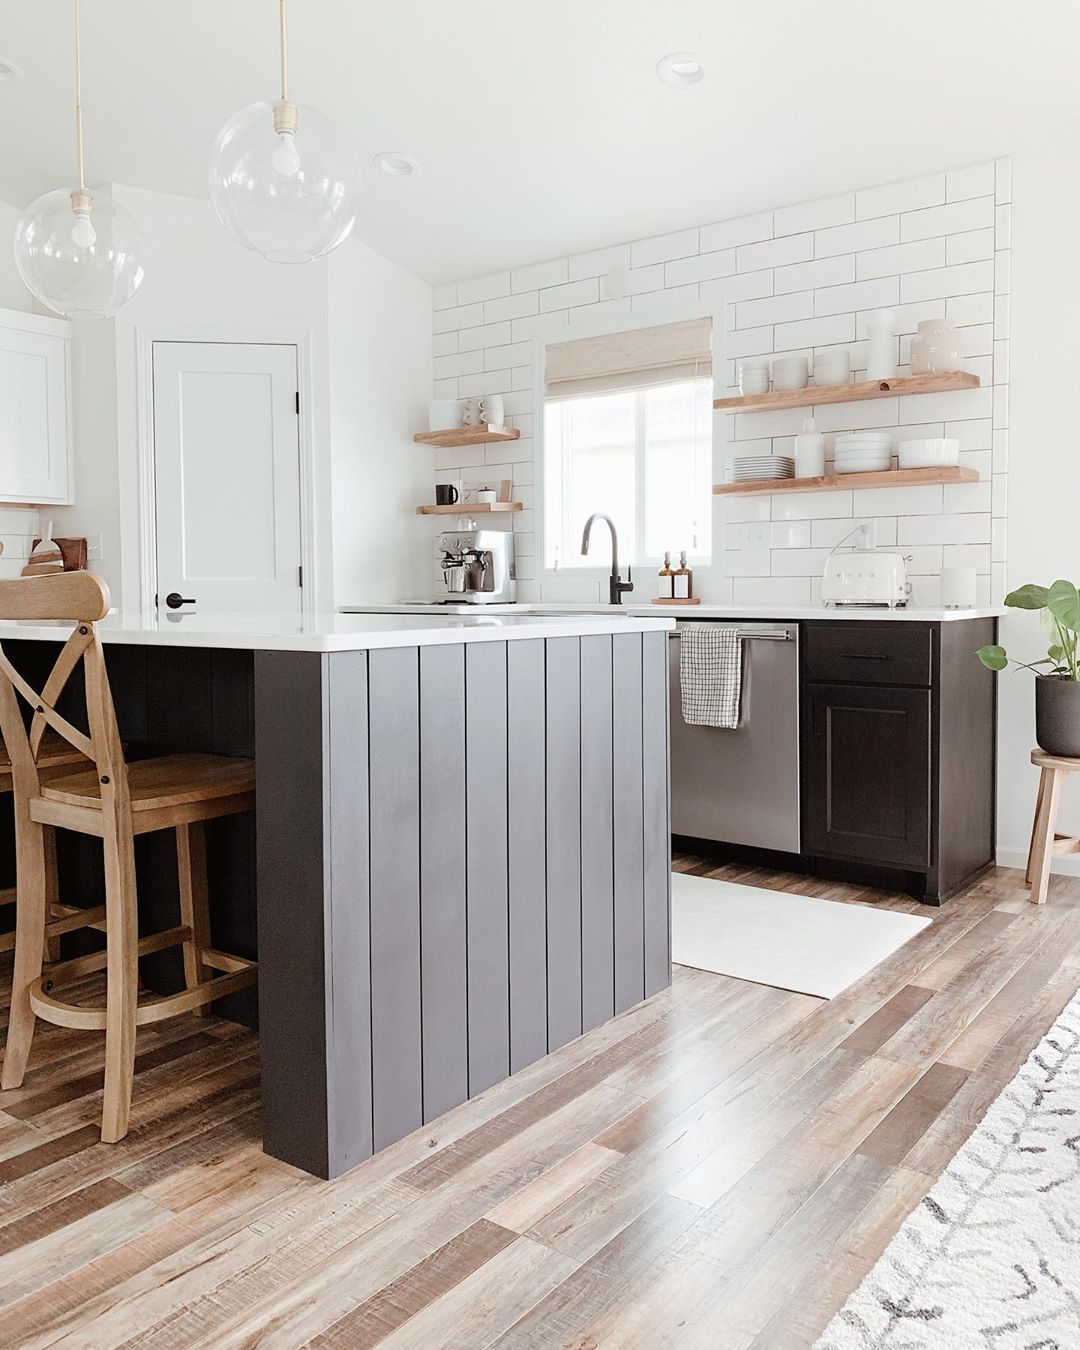 C H E L S E Y On Instagram Sometimes You Just Need To Make Your Dreams Come True And By Dreams I Mean Wrap Your Shiplap Kitchen Home Kitchens Brown Kitchens